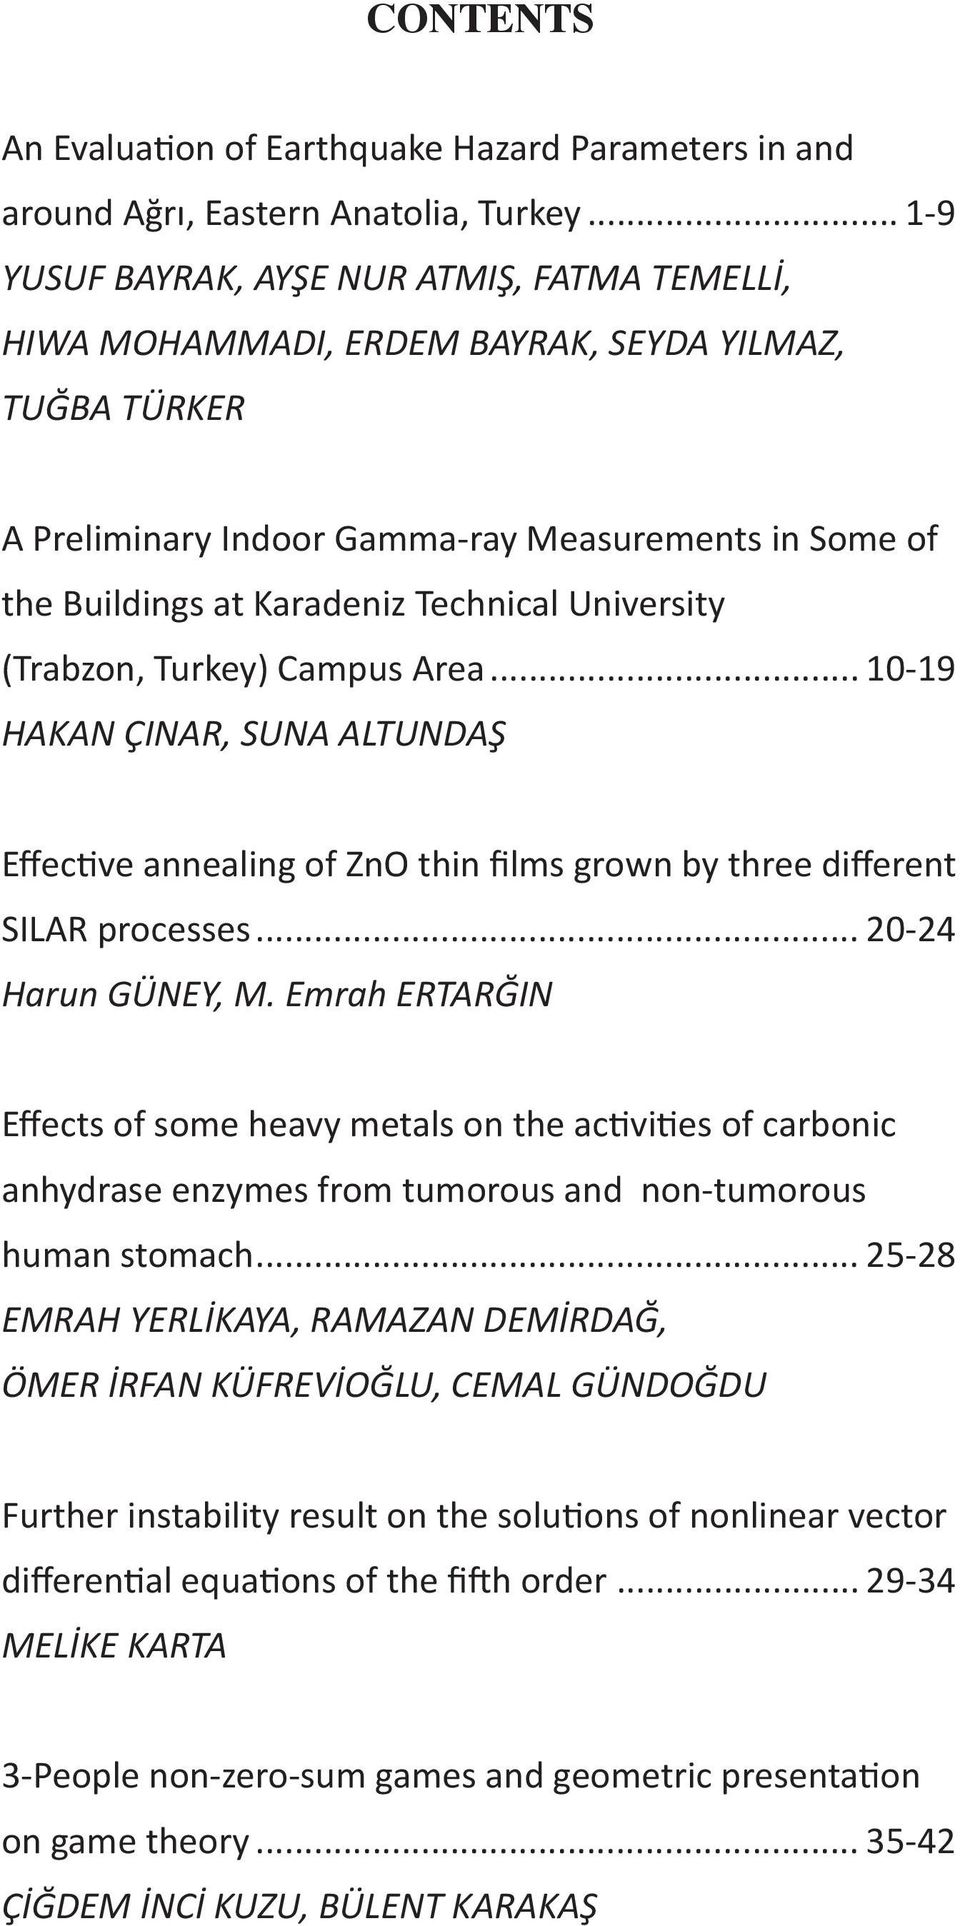 University (Trabzon, Turkey) Campus Area...10-19 HAKAN ÇINAR, SUNA ALTUNDAŞ Effec ve annealing of ZnO thin films grown by three different SILAR processes...20-24 Harun GÜNEY, M.